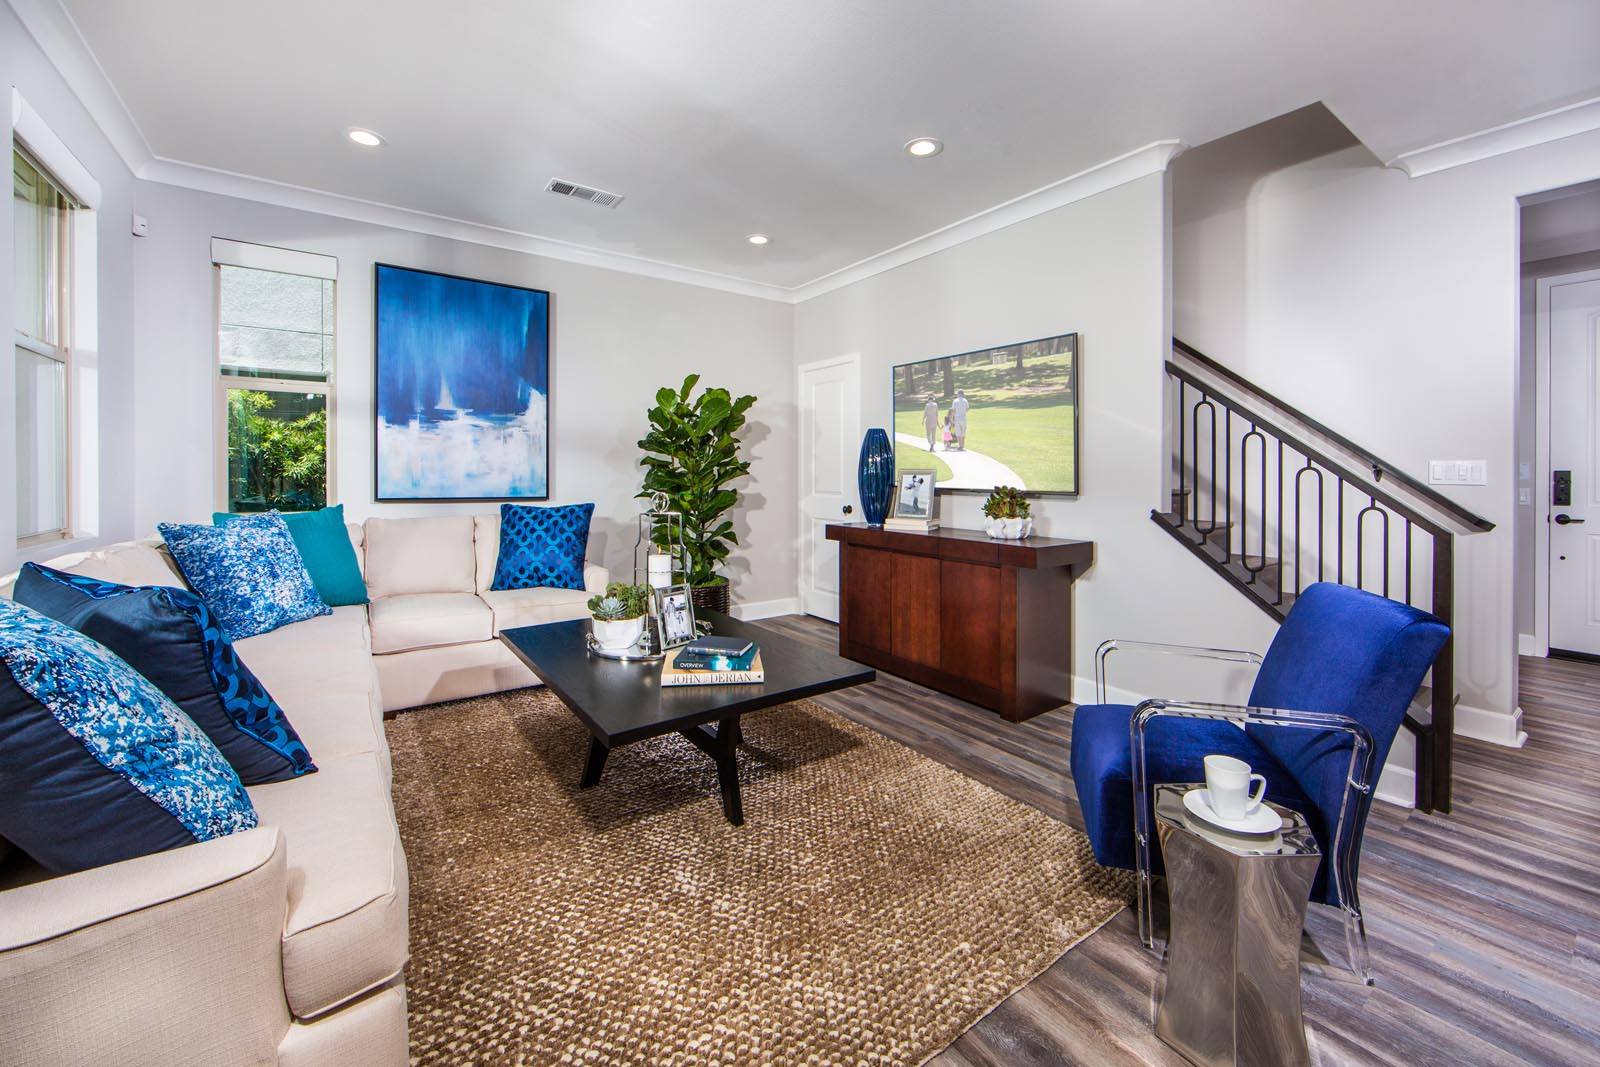 Residence 2 Family Room | Prado at the Village of Escaya in Chula Vista, CA | Brookfield Residential